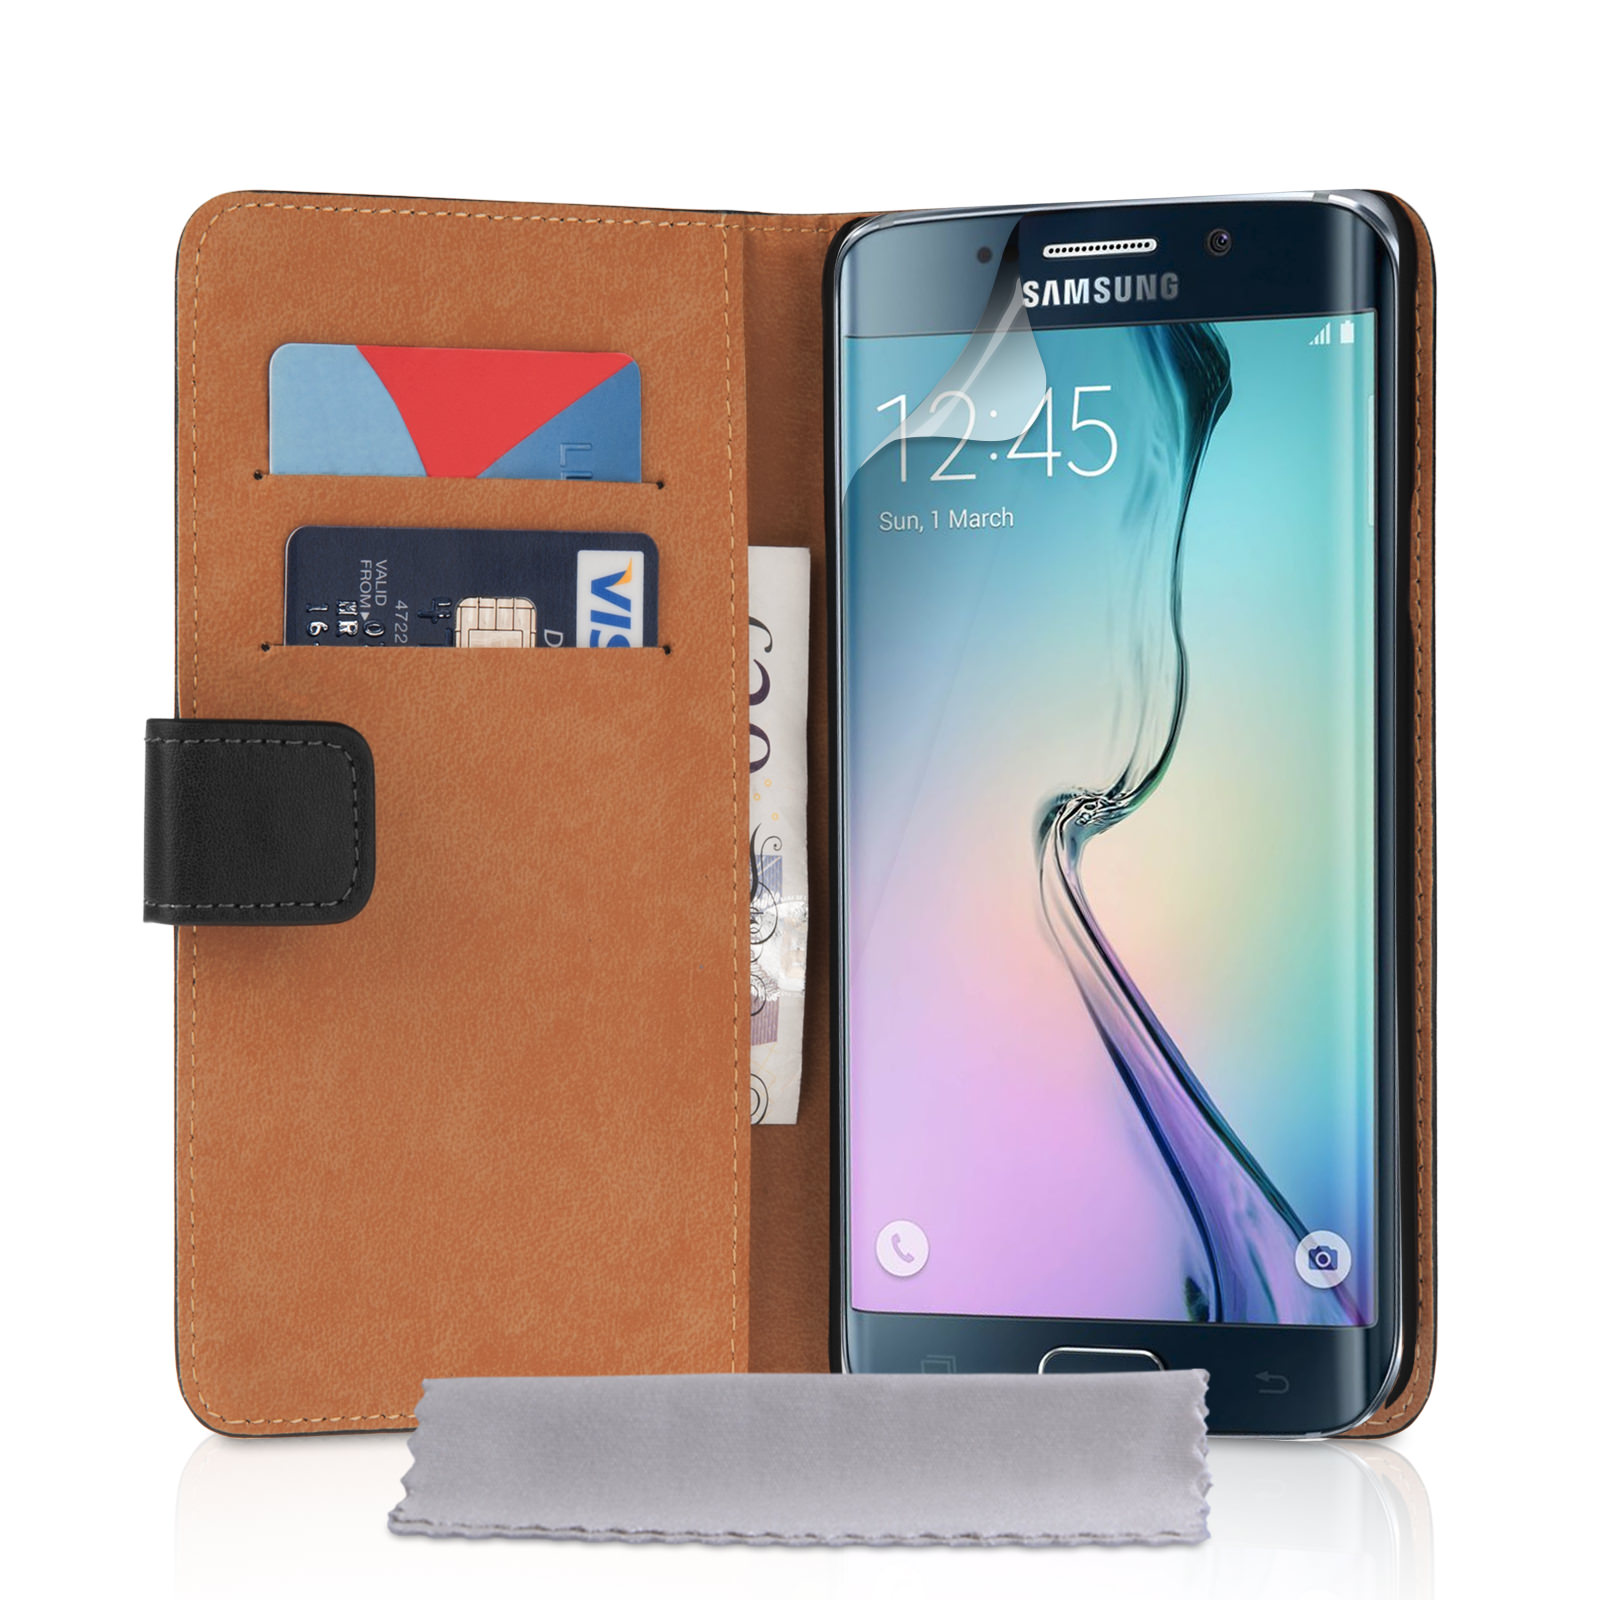 YouSave Samsung Galaxy S6 Edge Real Leather Wallet Case - Black